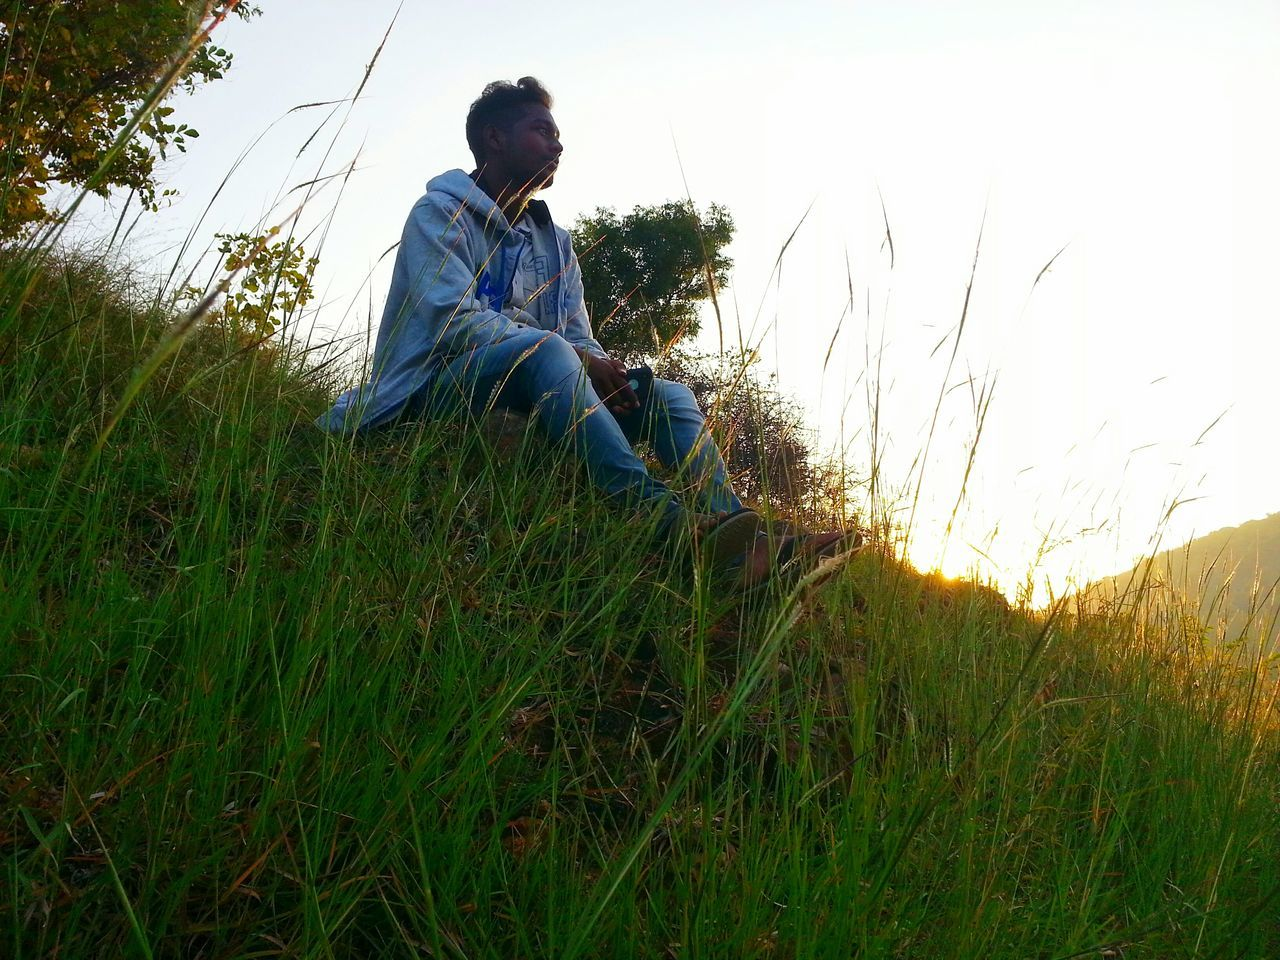 One Person Full Length Leisure Activity Outdoors Tree Grass Beauty In Nature Nature EyeEm Best Shots I Show The World What I See Check This Out! Sunset_collection Sun_collection Agriculture Scenics Embrace Urban Life Urban Photography Mensfashion Winter_collection Model Photography Modeling Shoot Winter Mountains Jeans Shirts Of EyeEm